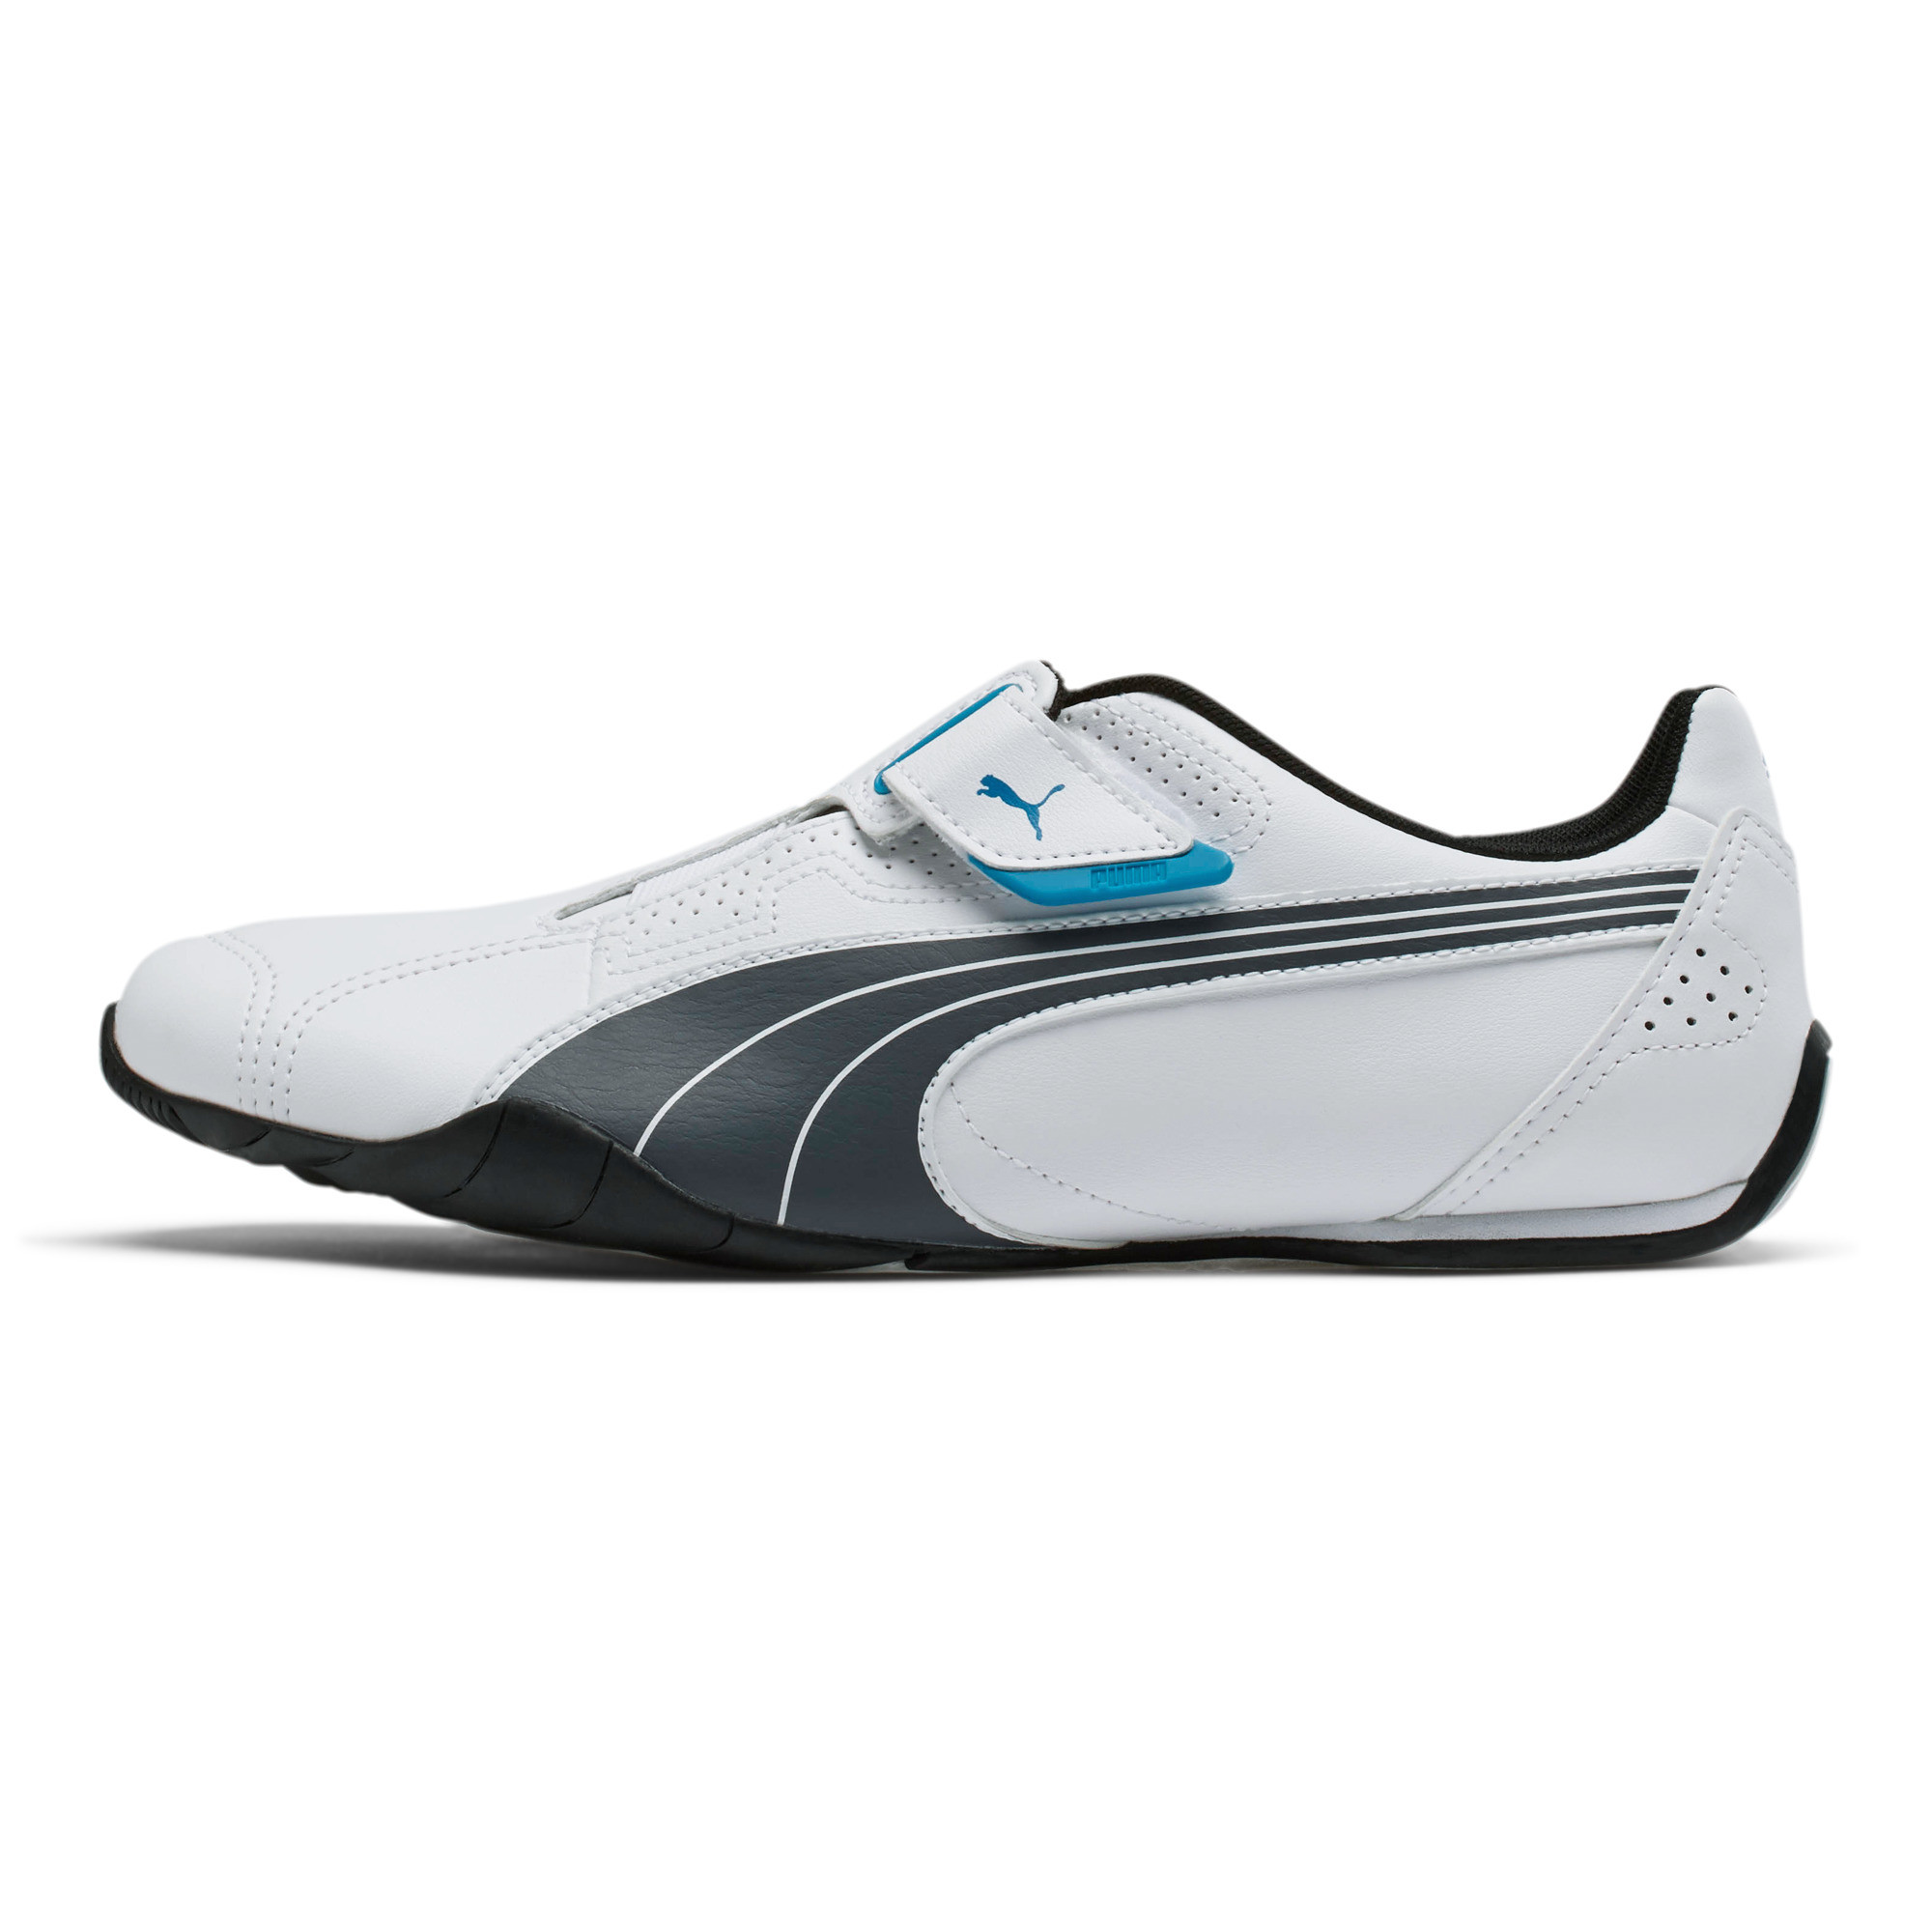 PUMA-Redon-Move-Shoes-Men-Shoe-Sport-Shoe thumbnail 16